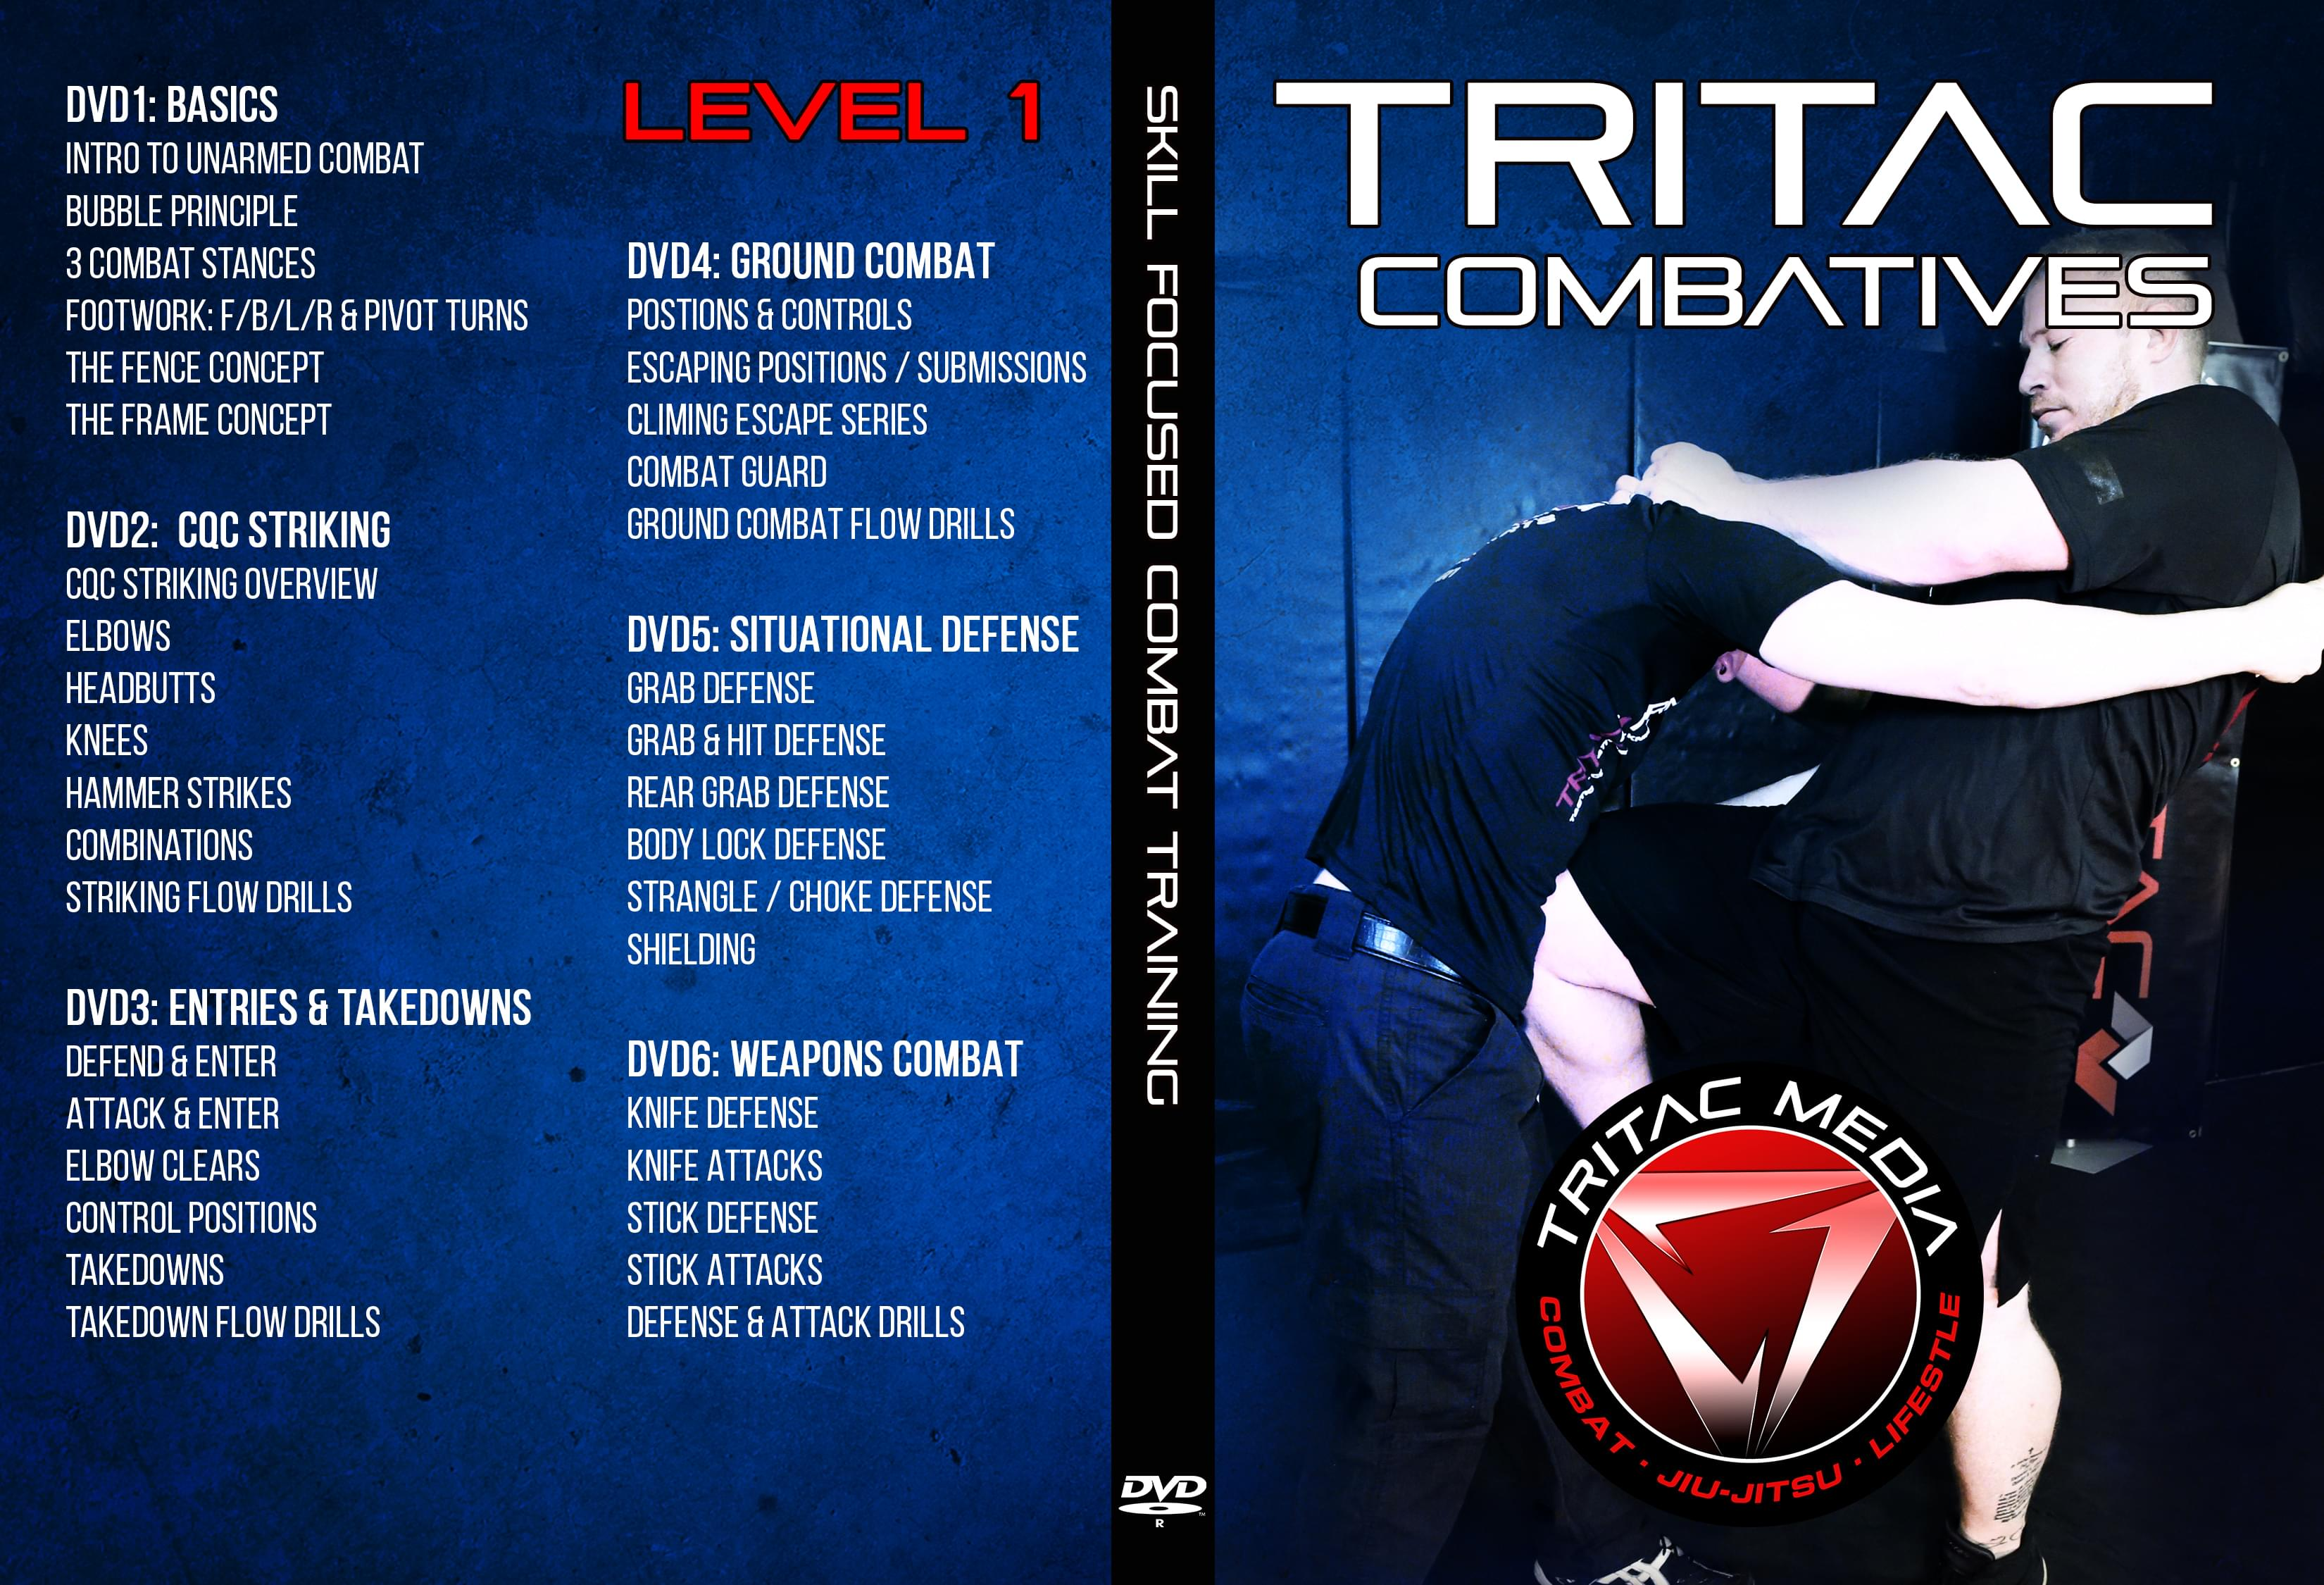 TRITAC COMBATIVES DVD